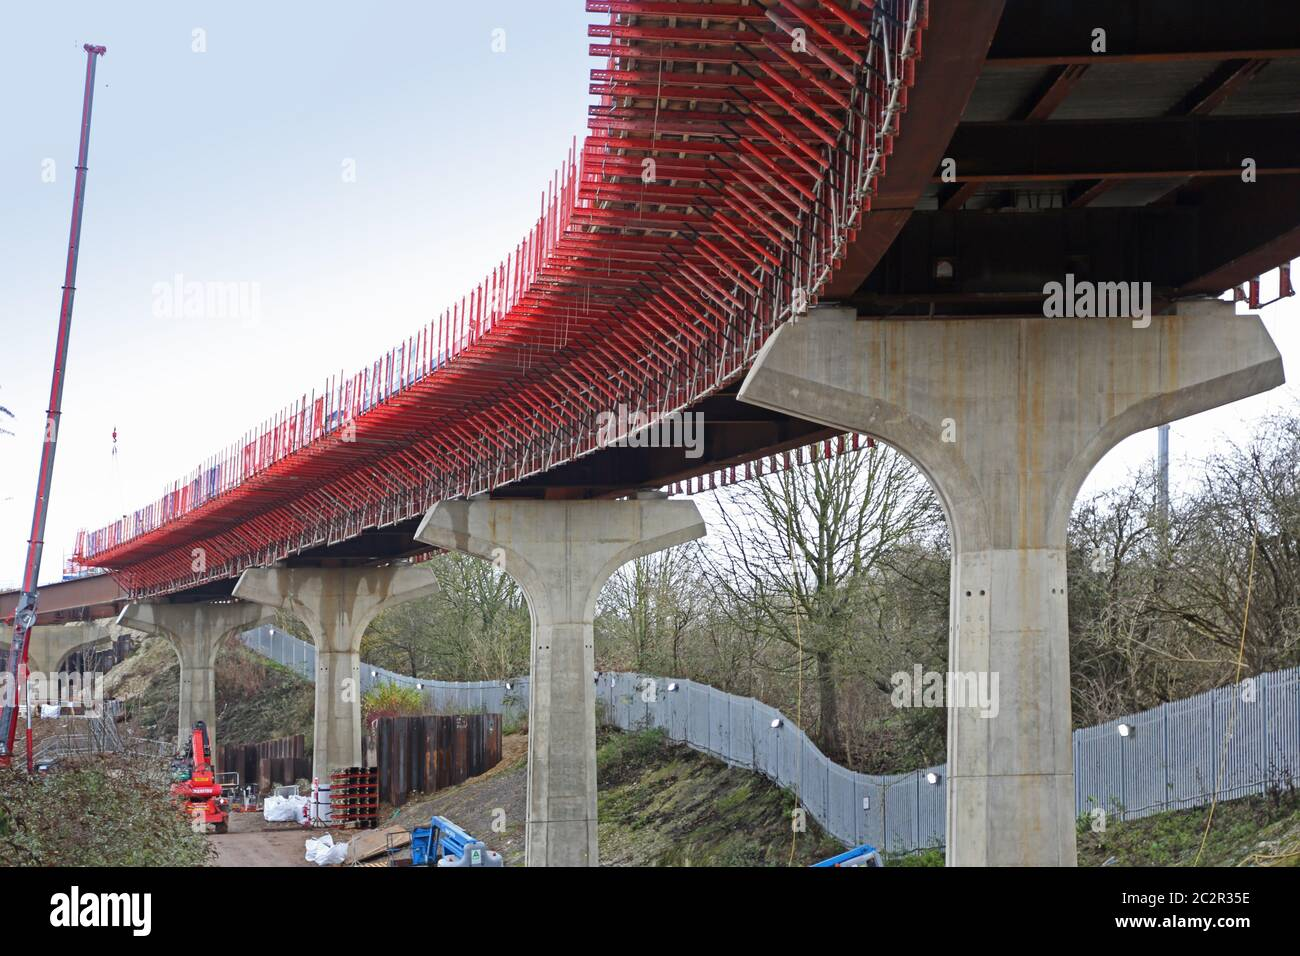 Construction of the new DART rail link from Luton Airport Parkway station to the Airport terminals. Shows concrete columns and steel bridge deck. Stock Photo